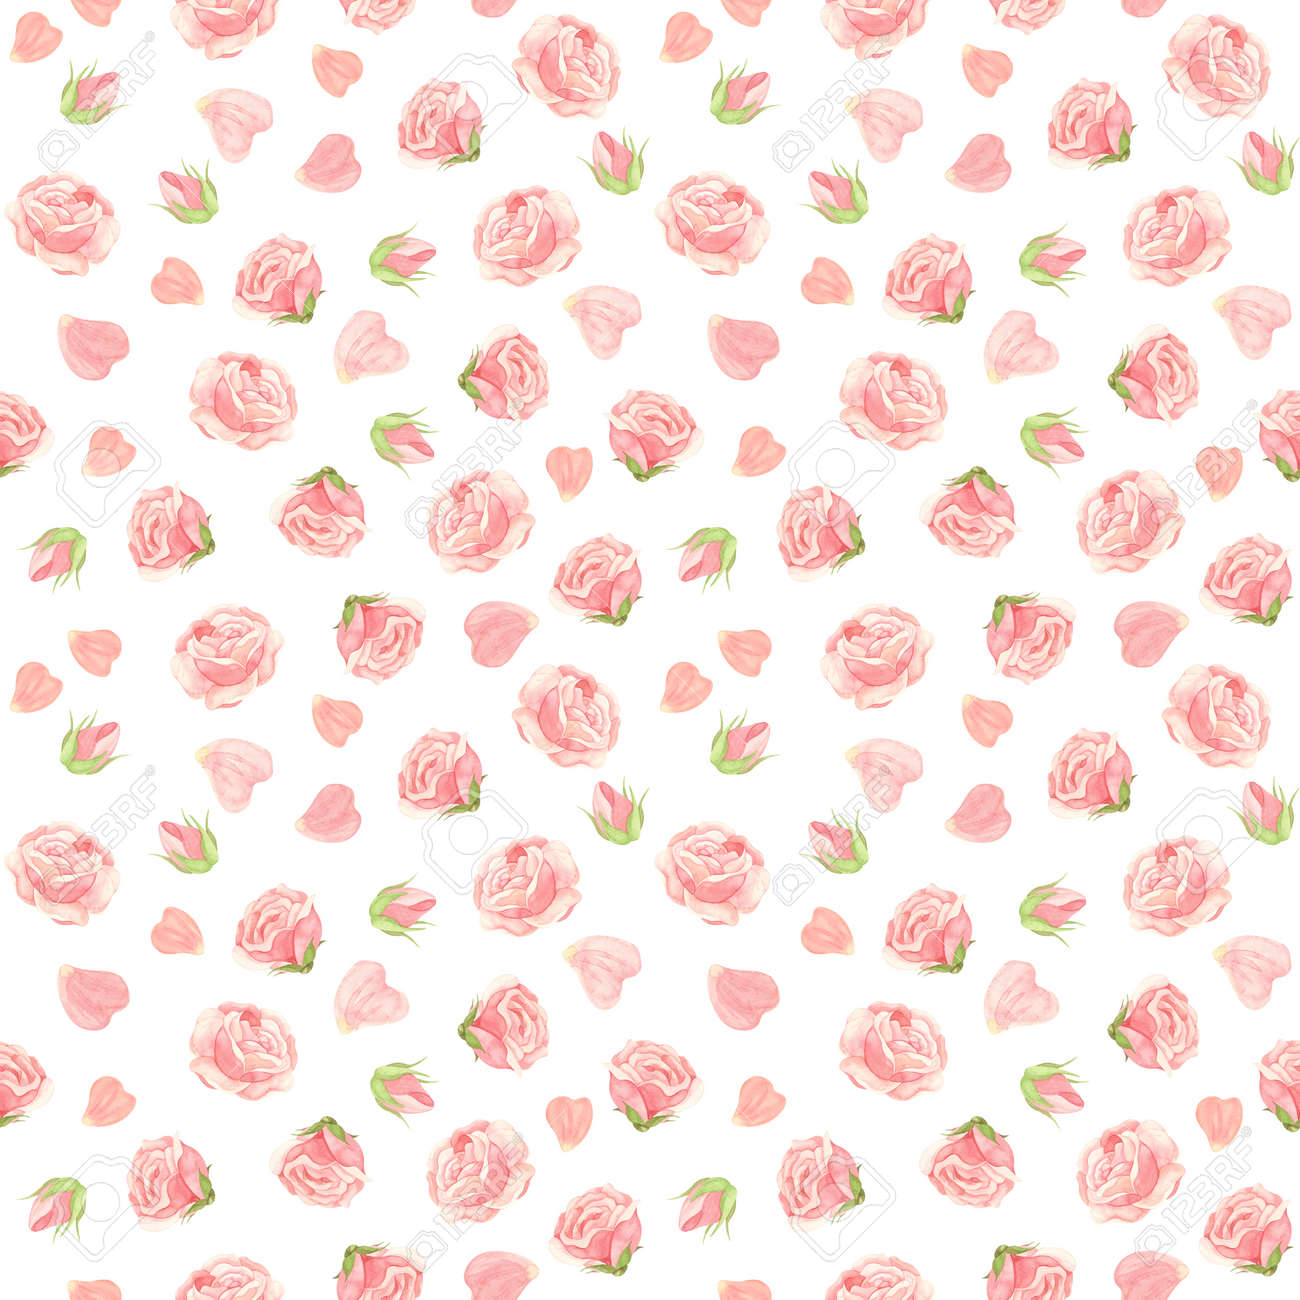 Pink roses seamless pattern. Flowers, buds and rose petals. Floral background in vintage style. Watercolor clipart. - 171478274